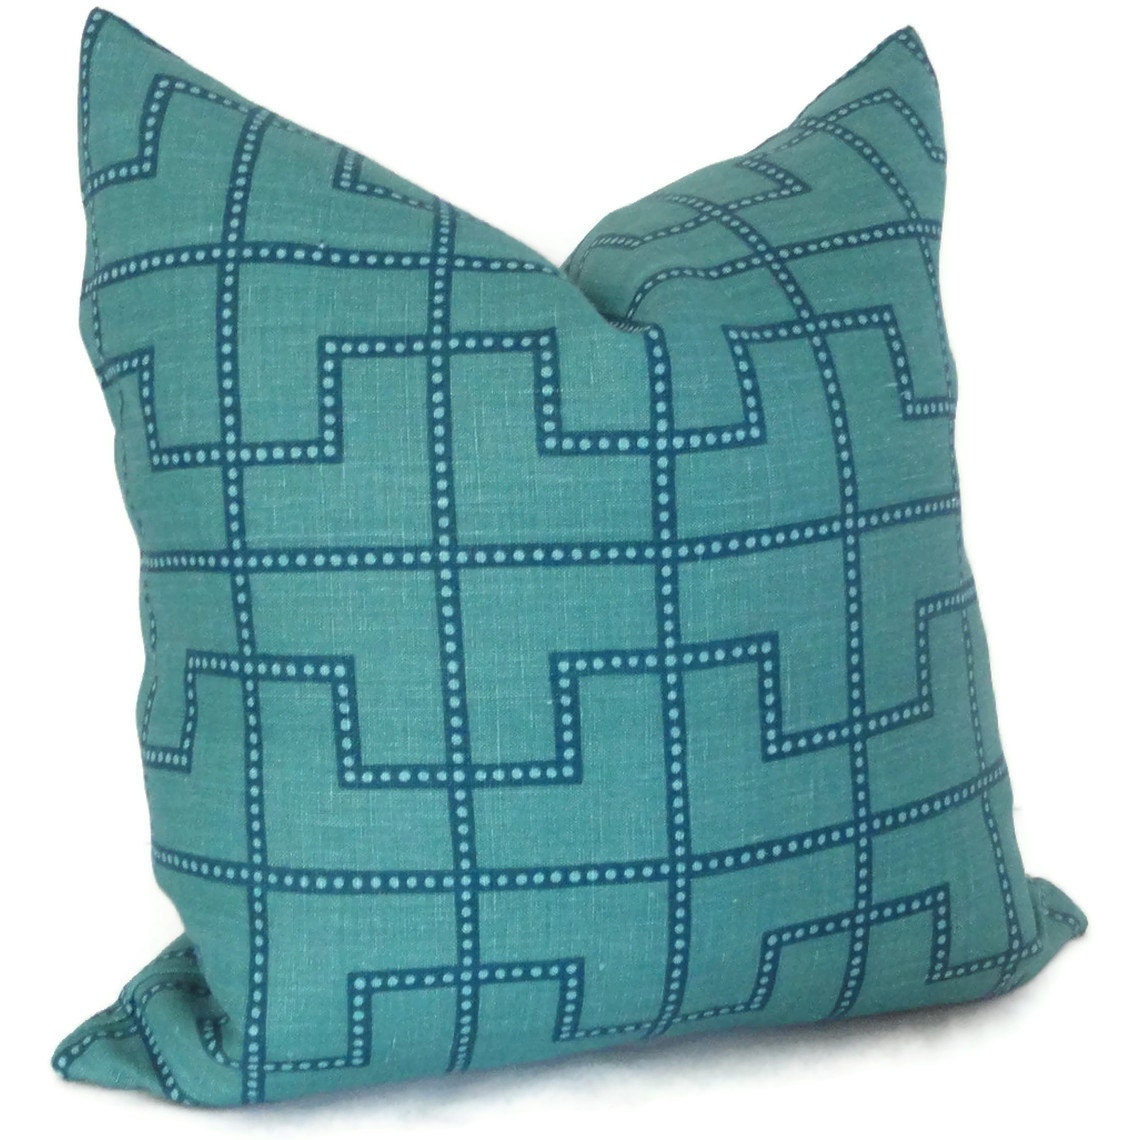 best hmong accent the pillow of blue cushion outdoor textiles batik design throw cover case vintage pillows covers decorative